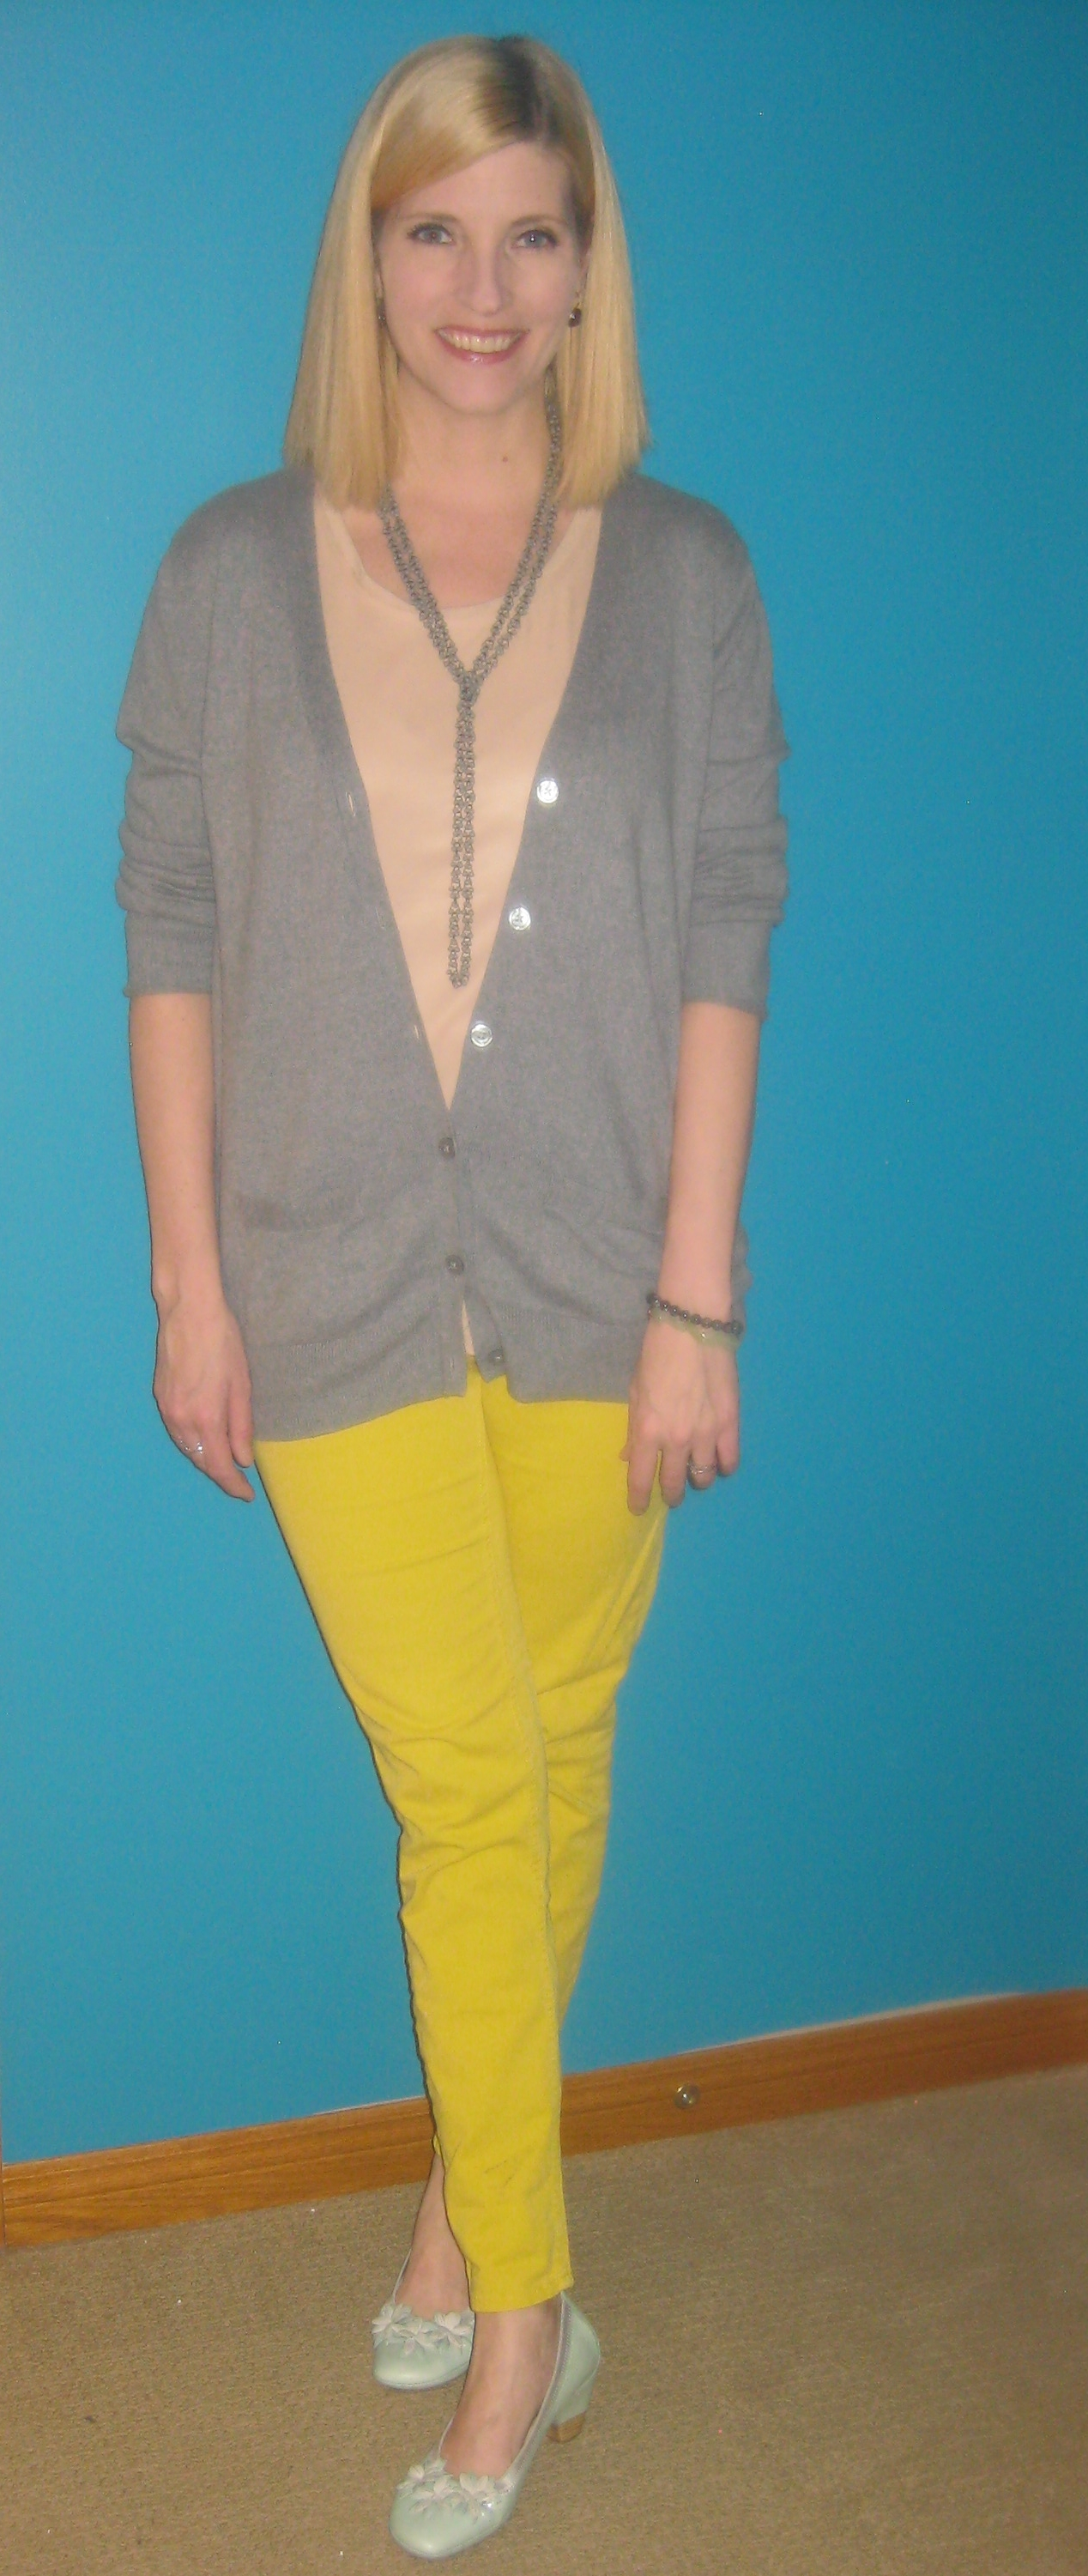 Yellow pants B.T. (Before Thrifting), Simply Vera Wang blush shell $2.50, grey cardi $2.50, Hispanitas shoes $17 and necklace B.T.